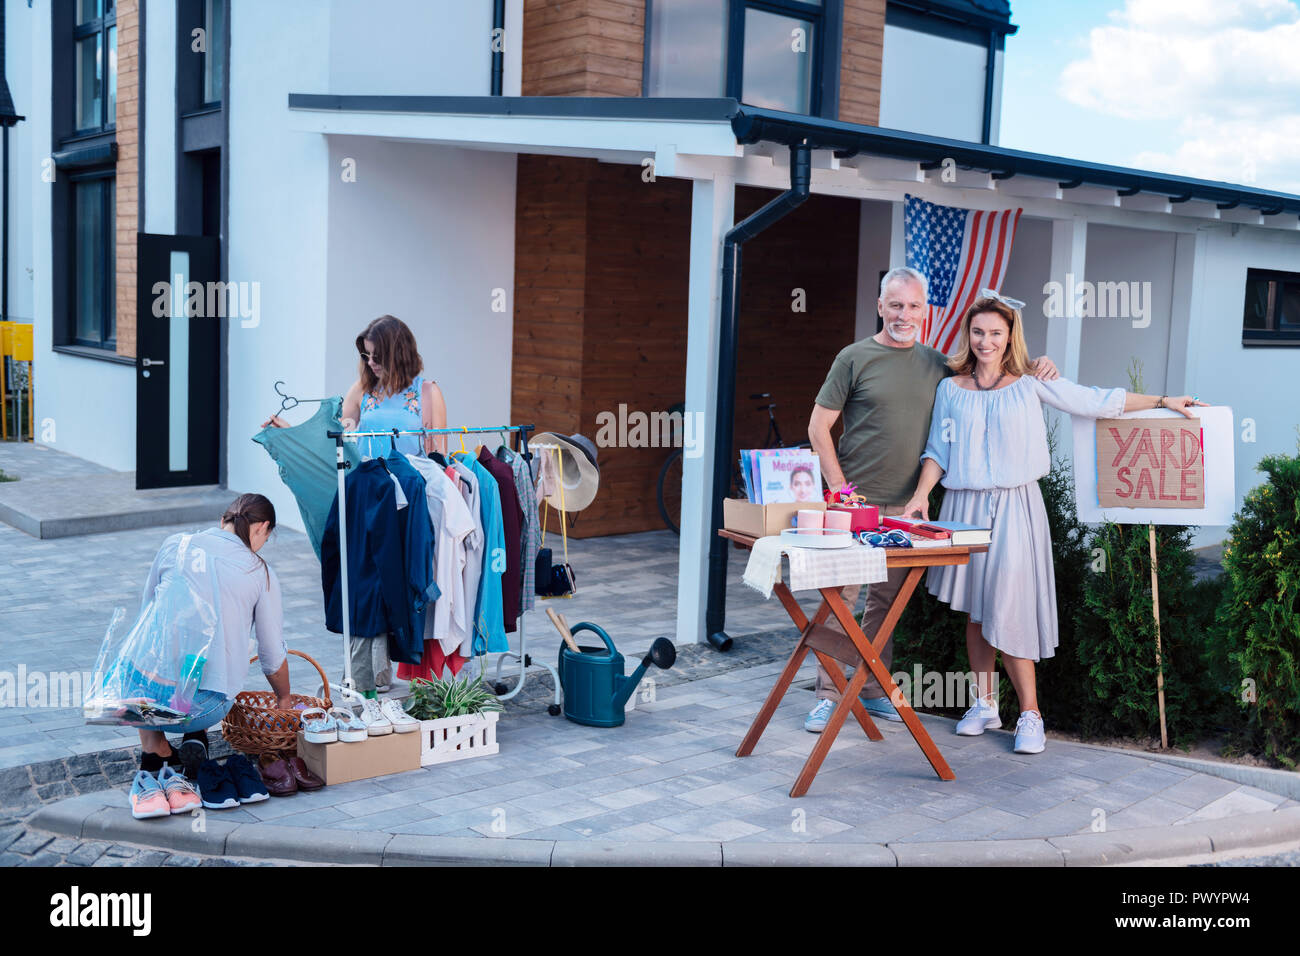 Generous and kind-hearted husband and wife feeling contended during yard sale - Stock Image